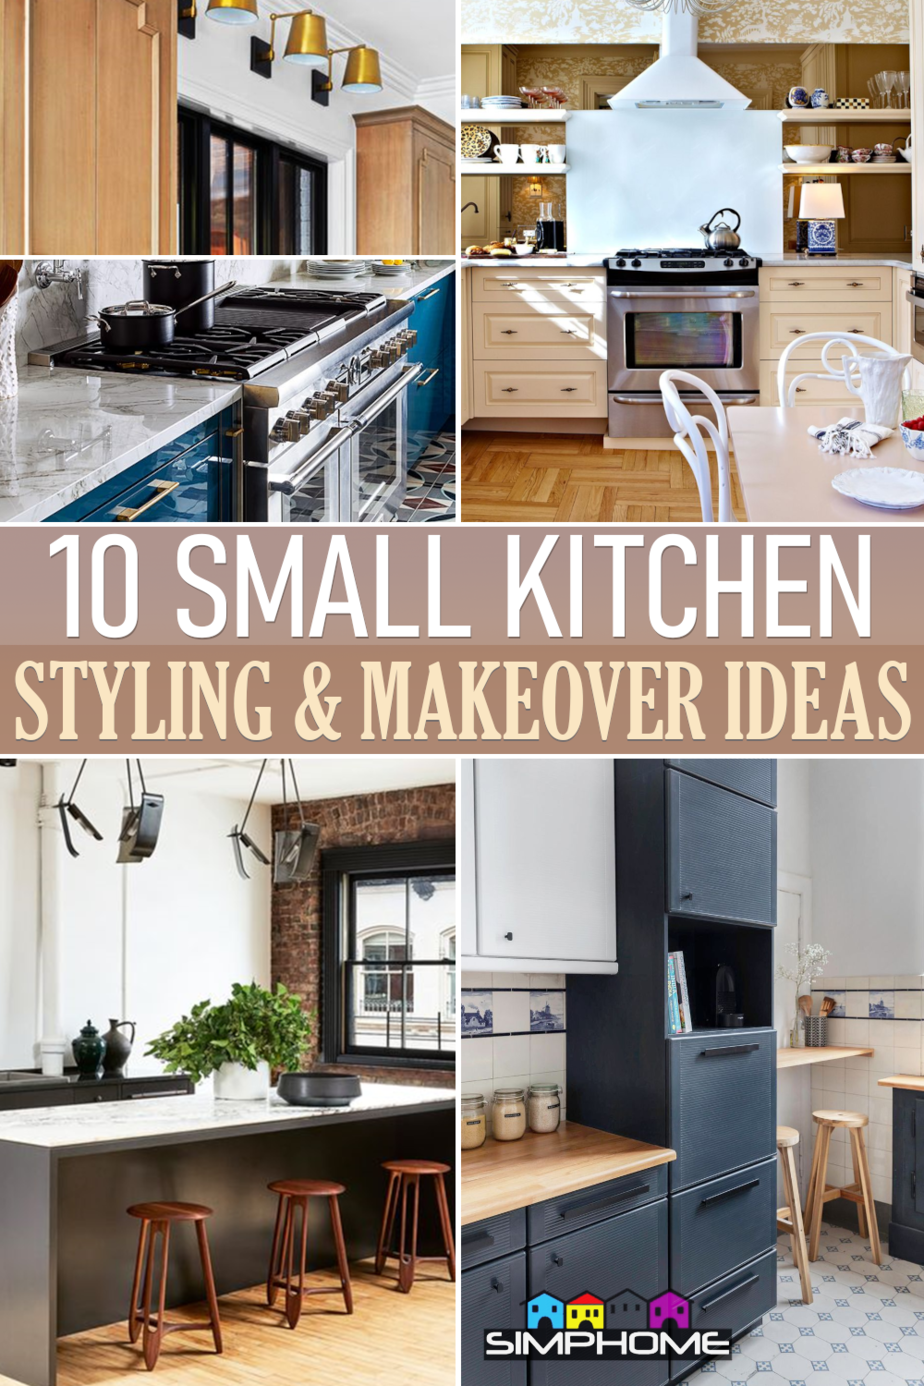 10 Small kitchen styling ideas via Simphome.comFeatured